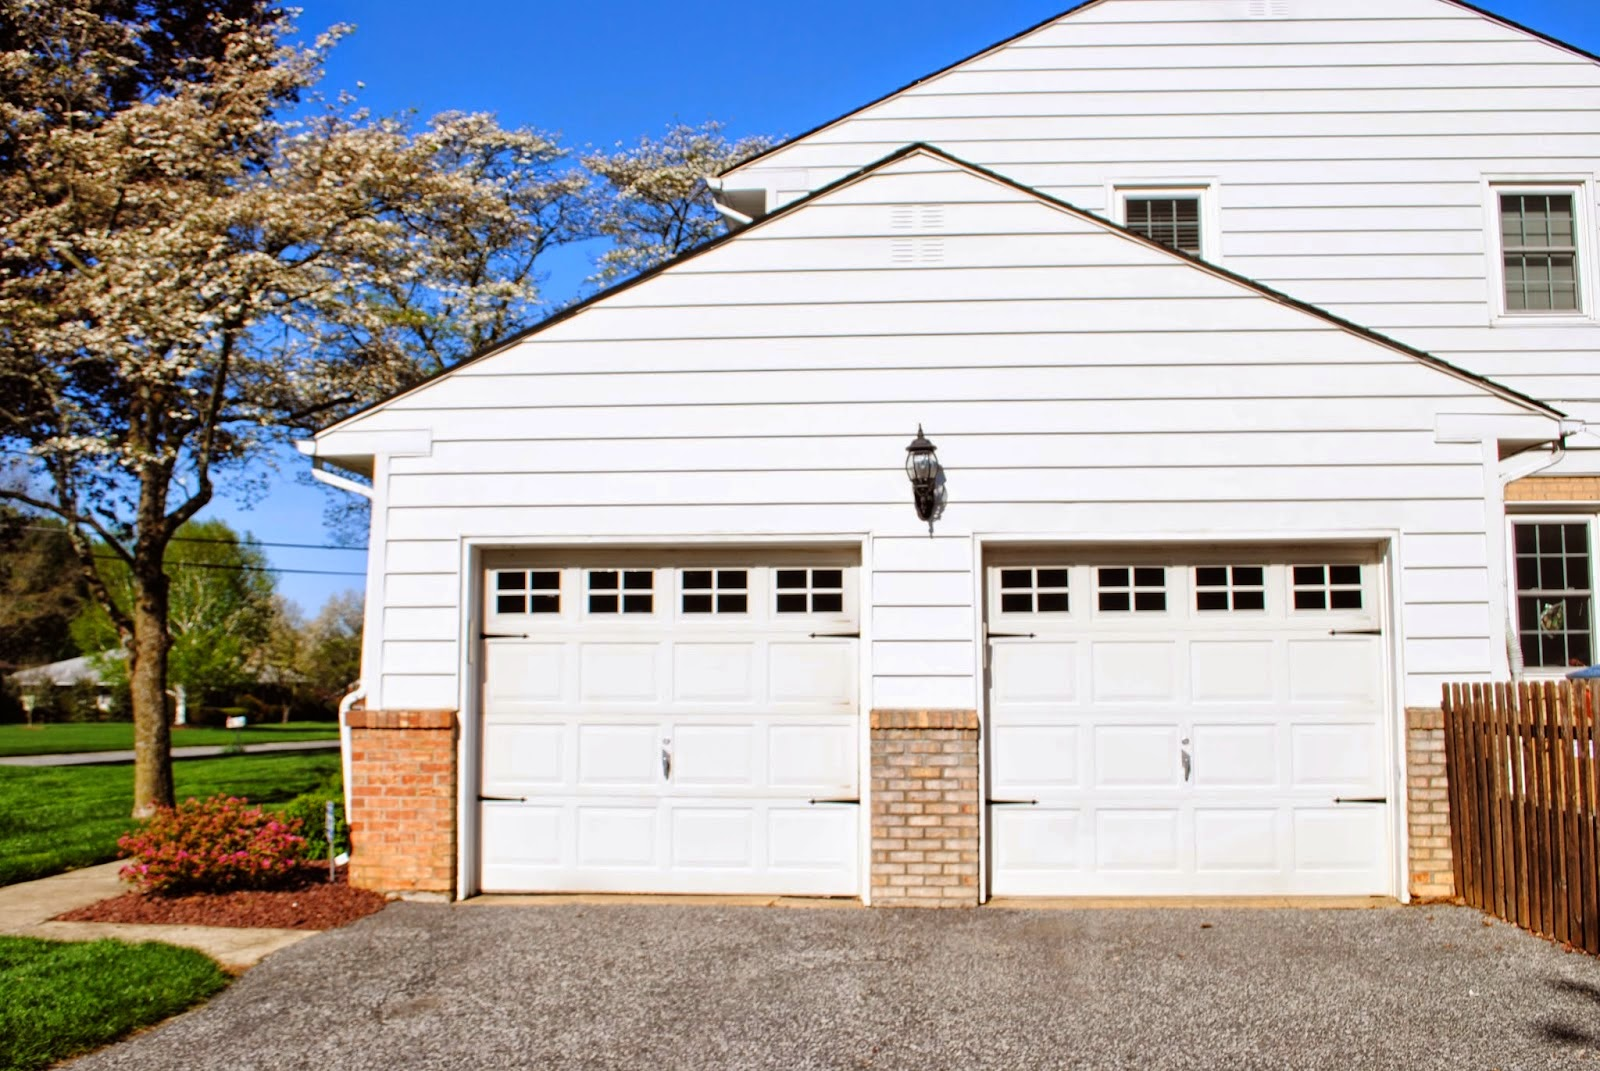 Vinyl, faux carriage garage doors